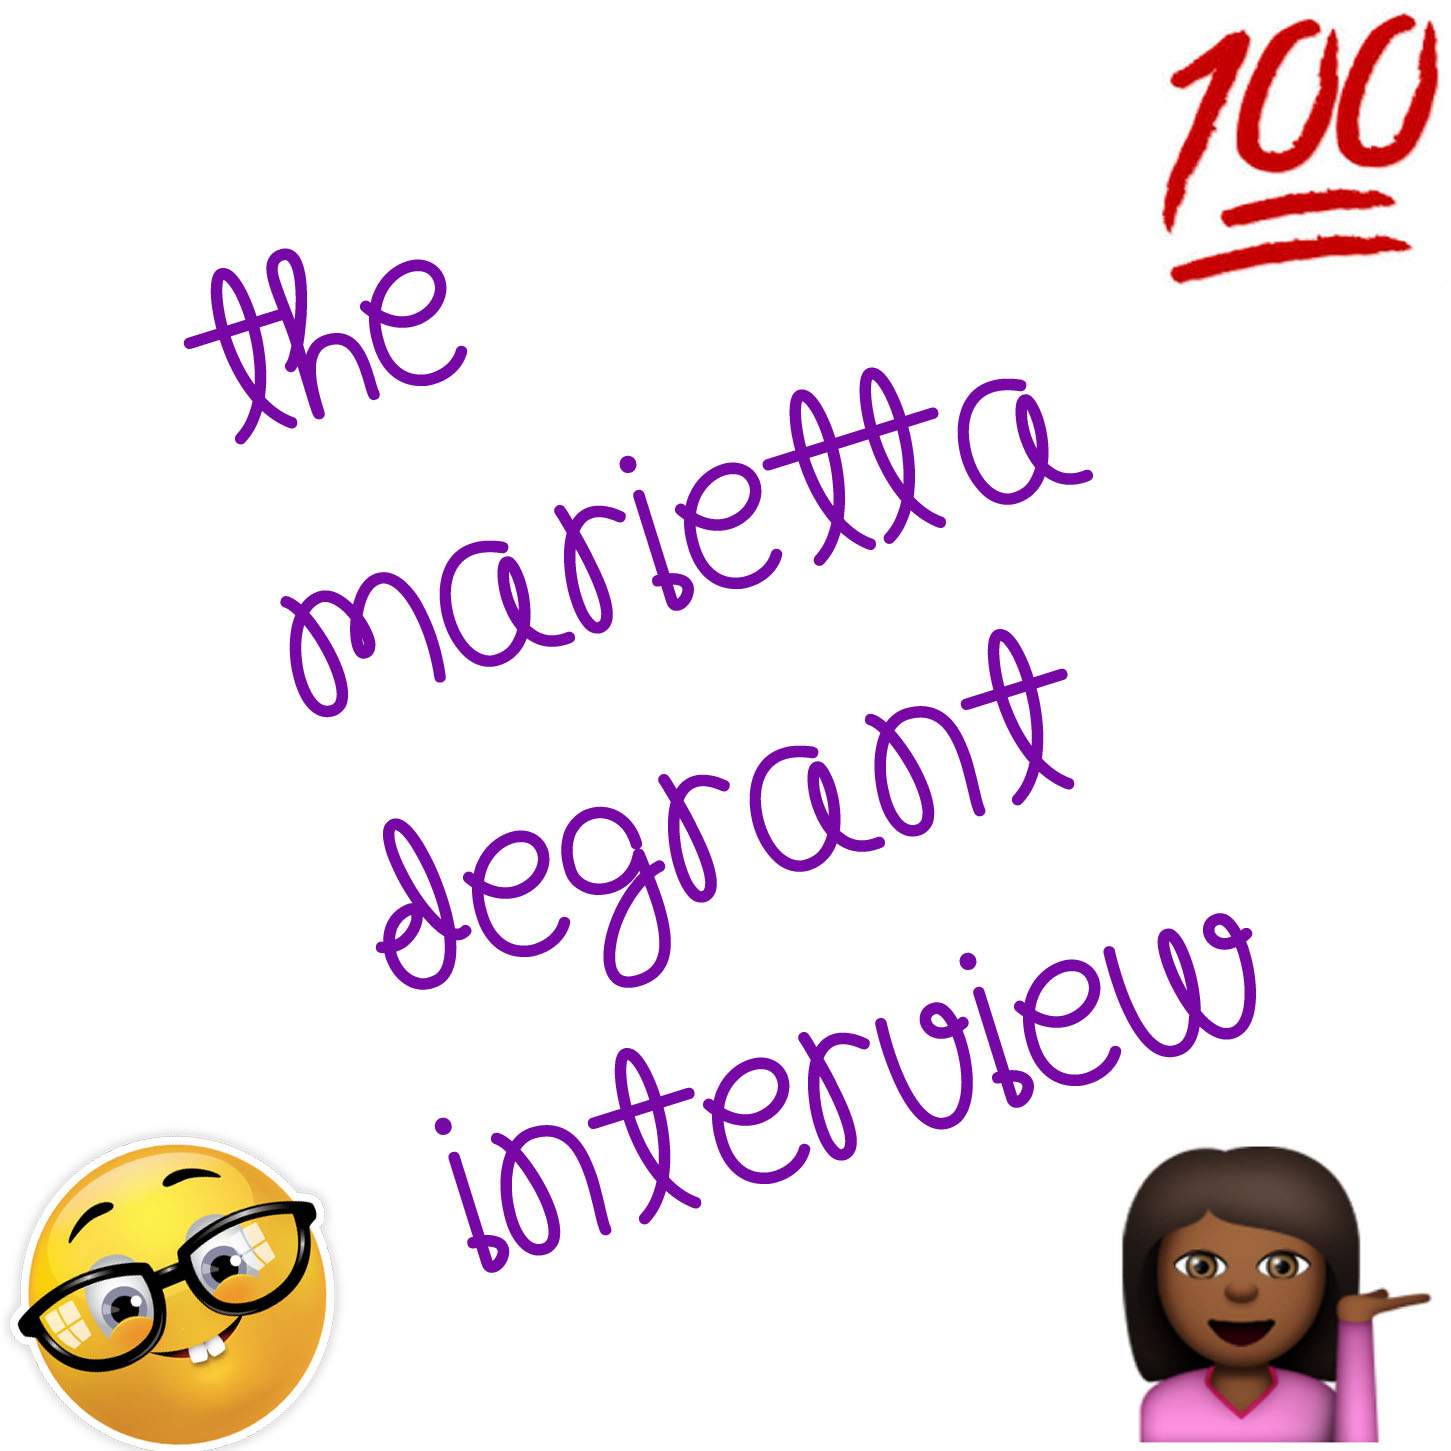 The Marietta DeGrant Interview